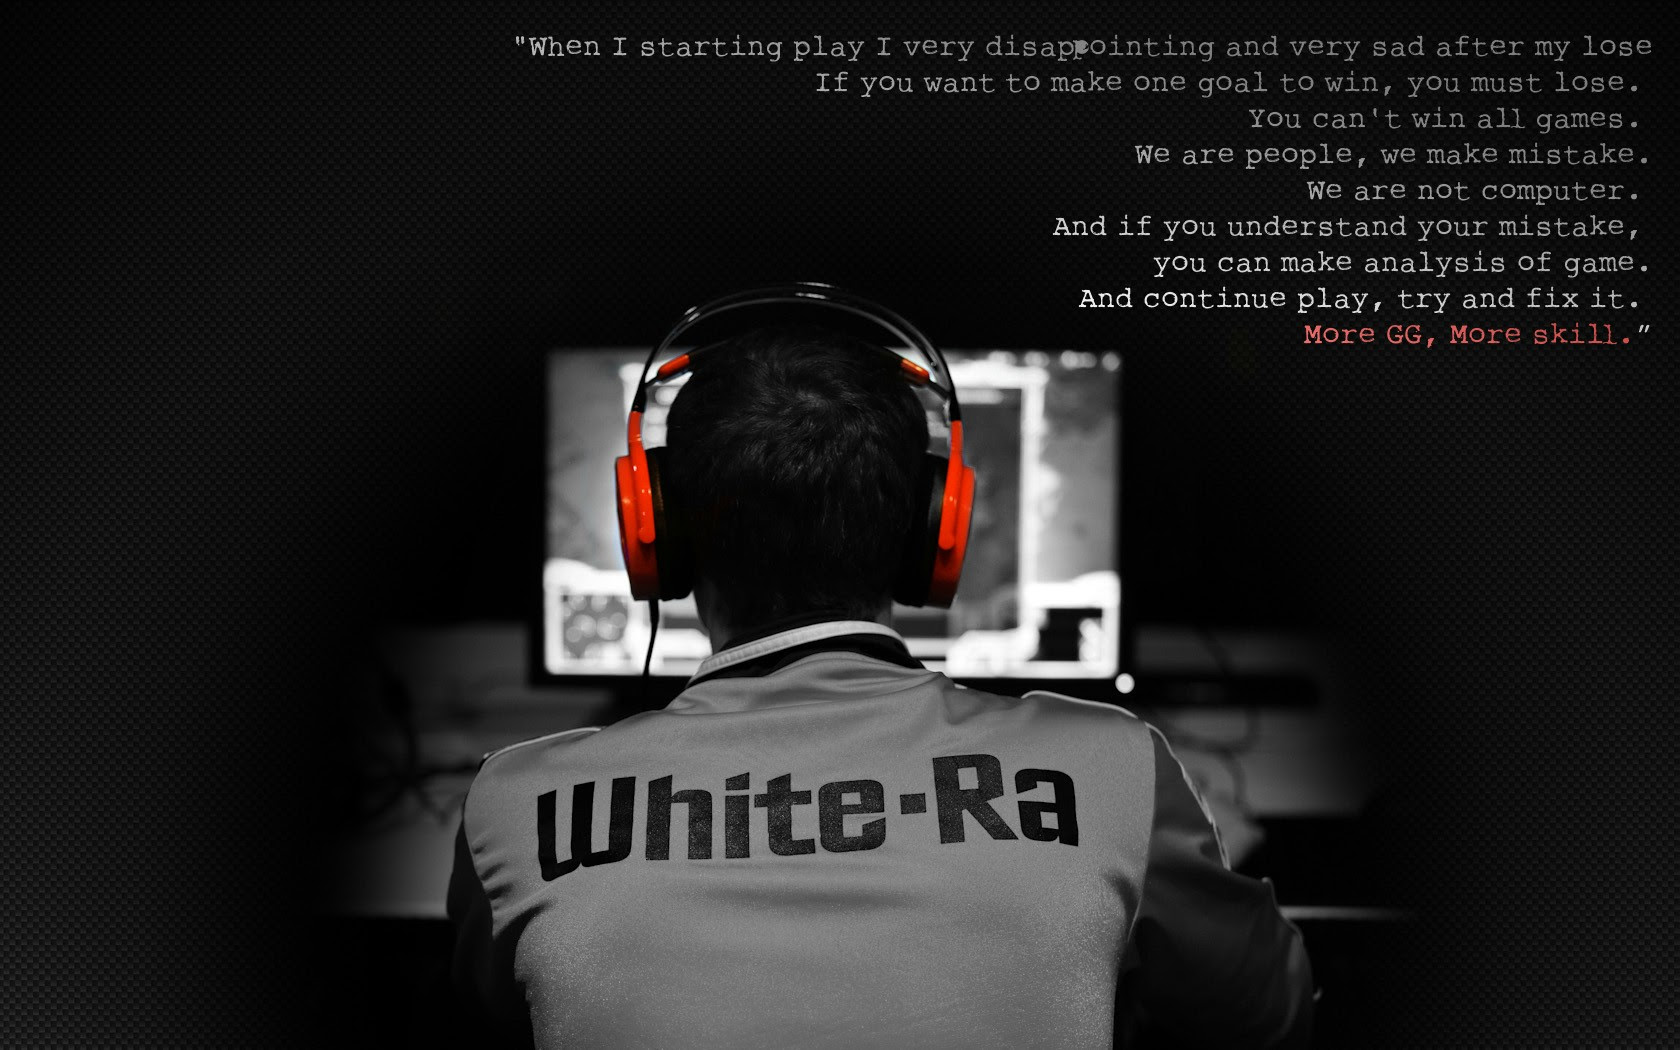 Epic White Ra Quote Wallpaper Starcraft Ii Forums